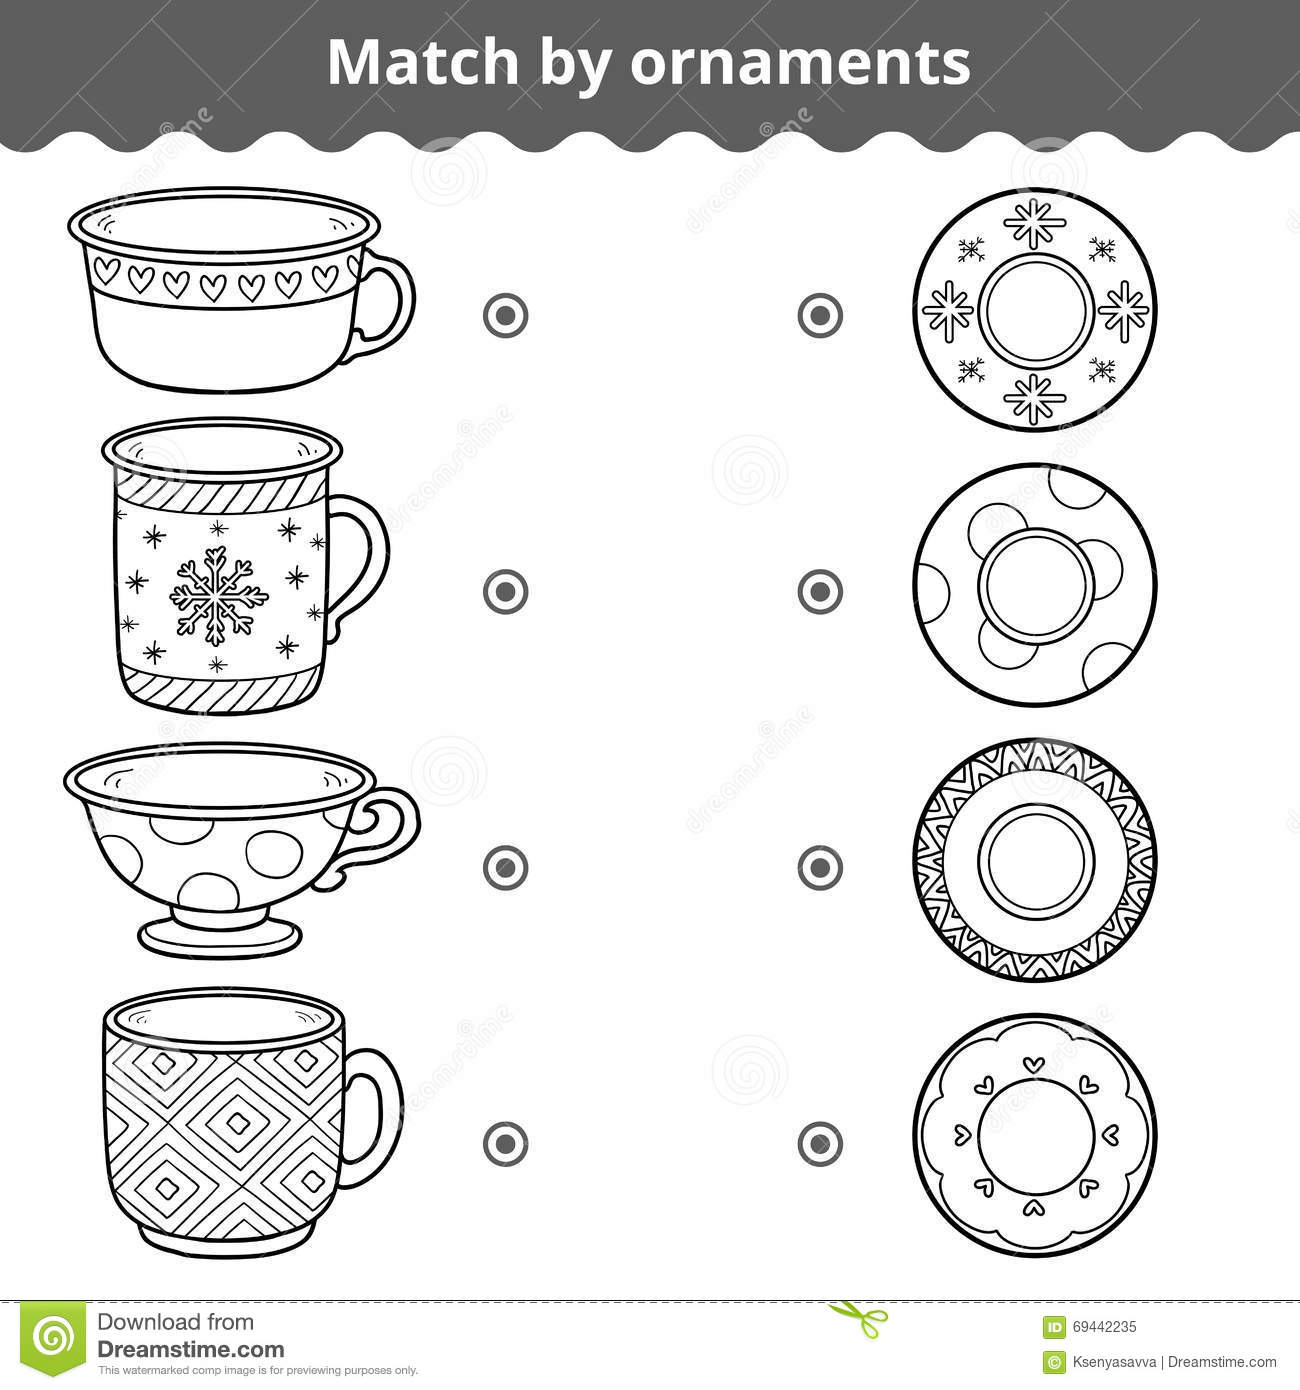 Matching Game For Children Match Plates And Mugs By